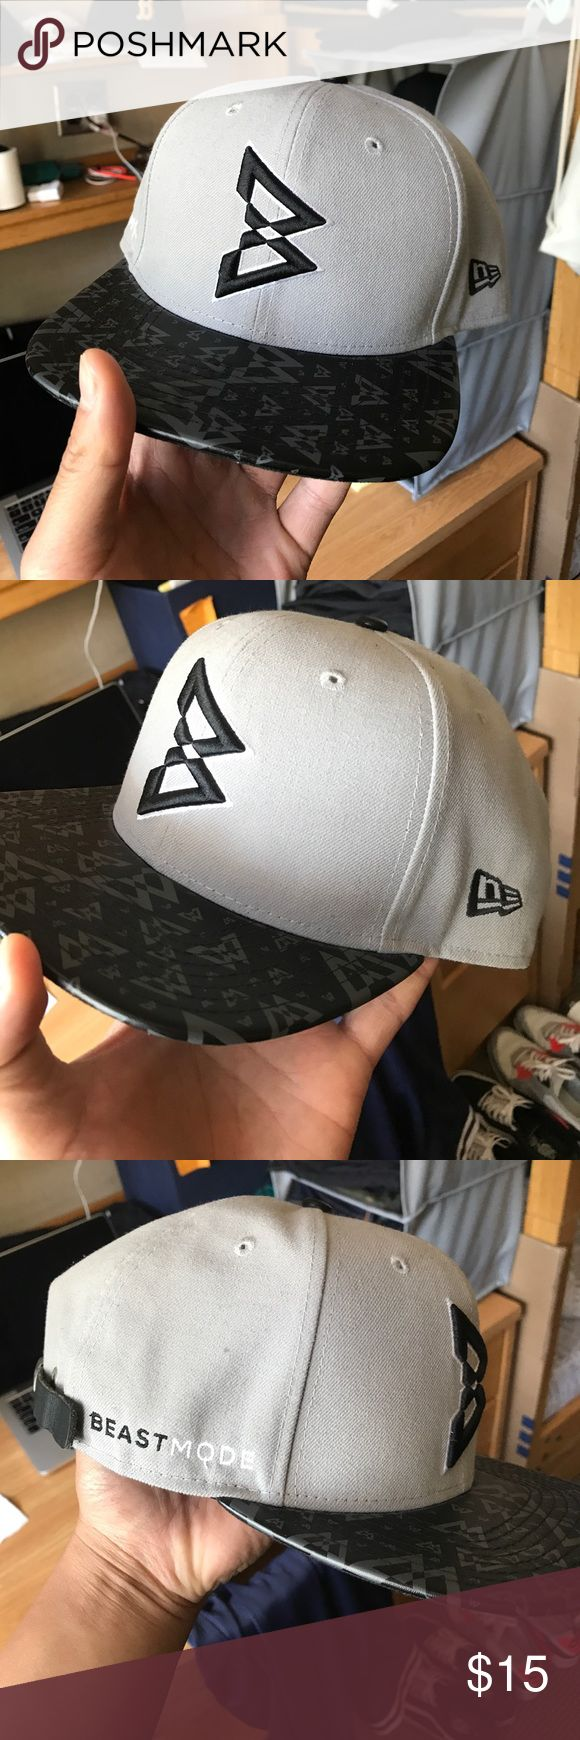 New era 9fifty beast mode (marshawn lynch) Limited edition 9fifty collab wih marshawn lynch (seattle seahawks football player). Great condition New Era Accessories Hats